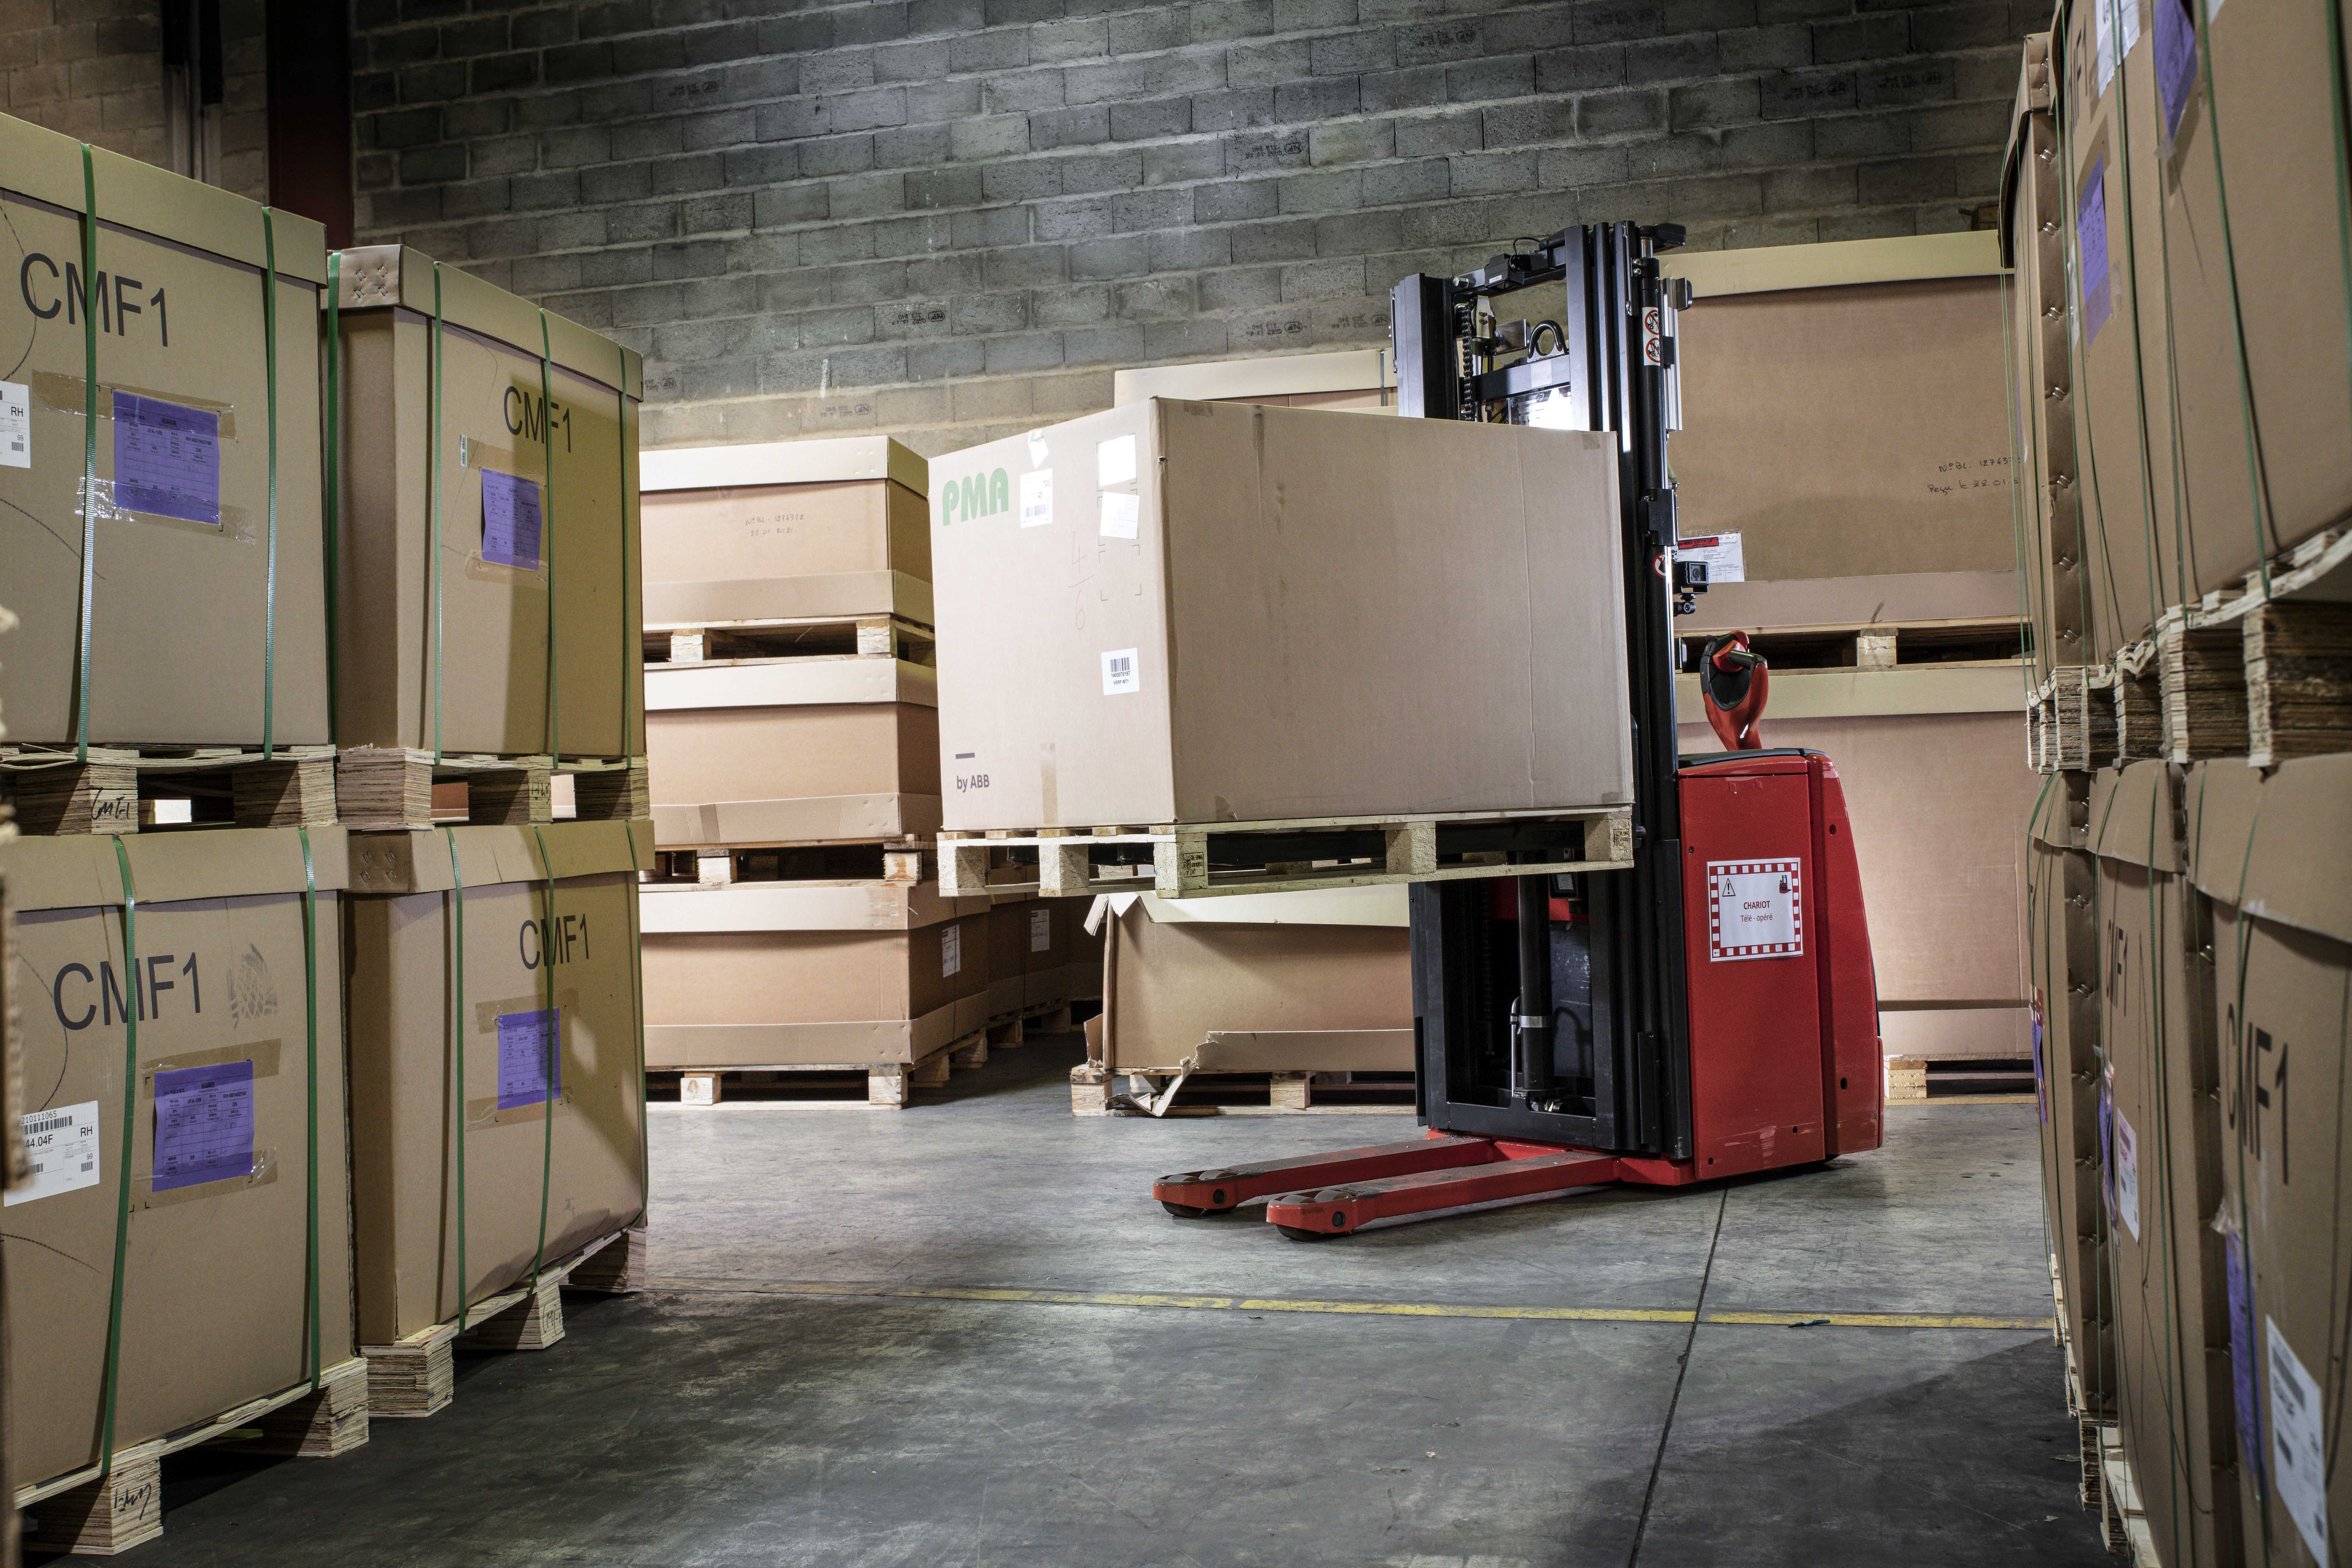 Remote-controlled forklifts have arrived in France, courtesy of Phantom Auto